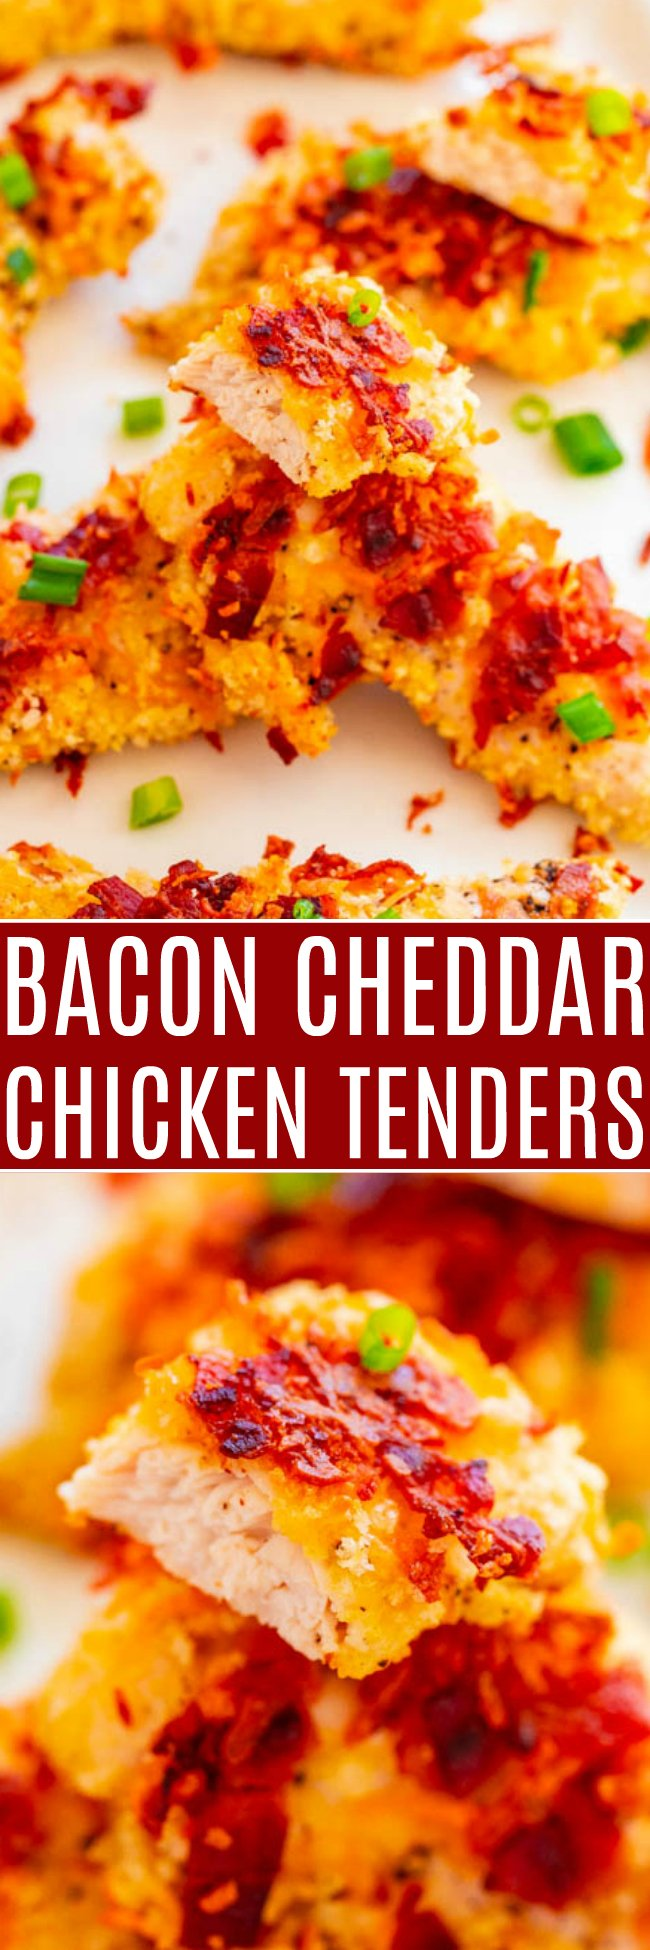 Baked Bacon Cheddar Chicken Tenders - Fast, EASY, perfectly CRISPY on the outside, and juicy on the inside!! Don't bother frying chicken when you can bake it! The BACON and CHEDDAR coating is irresistible!!